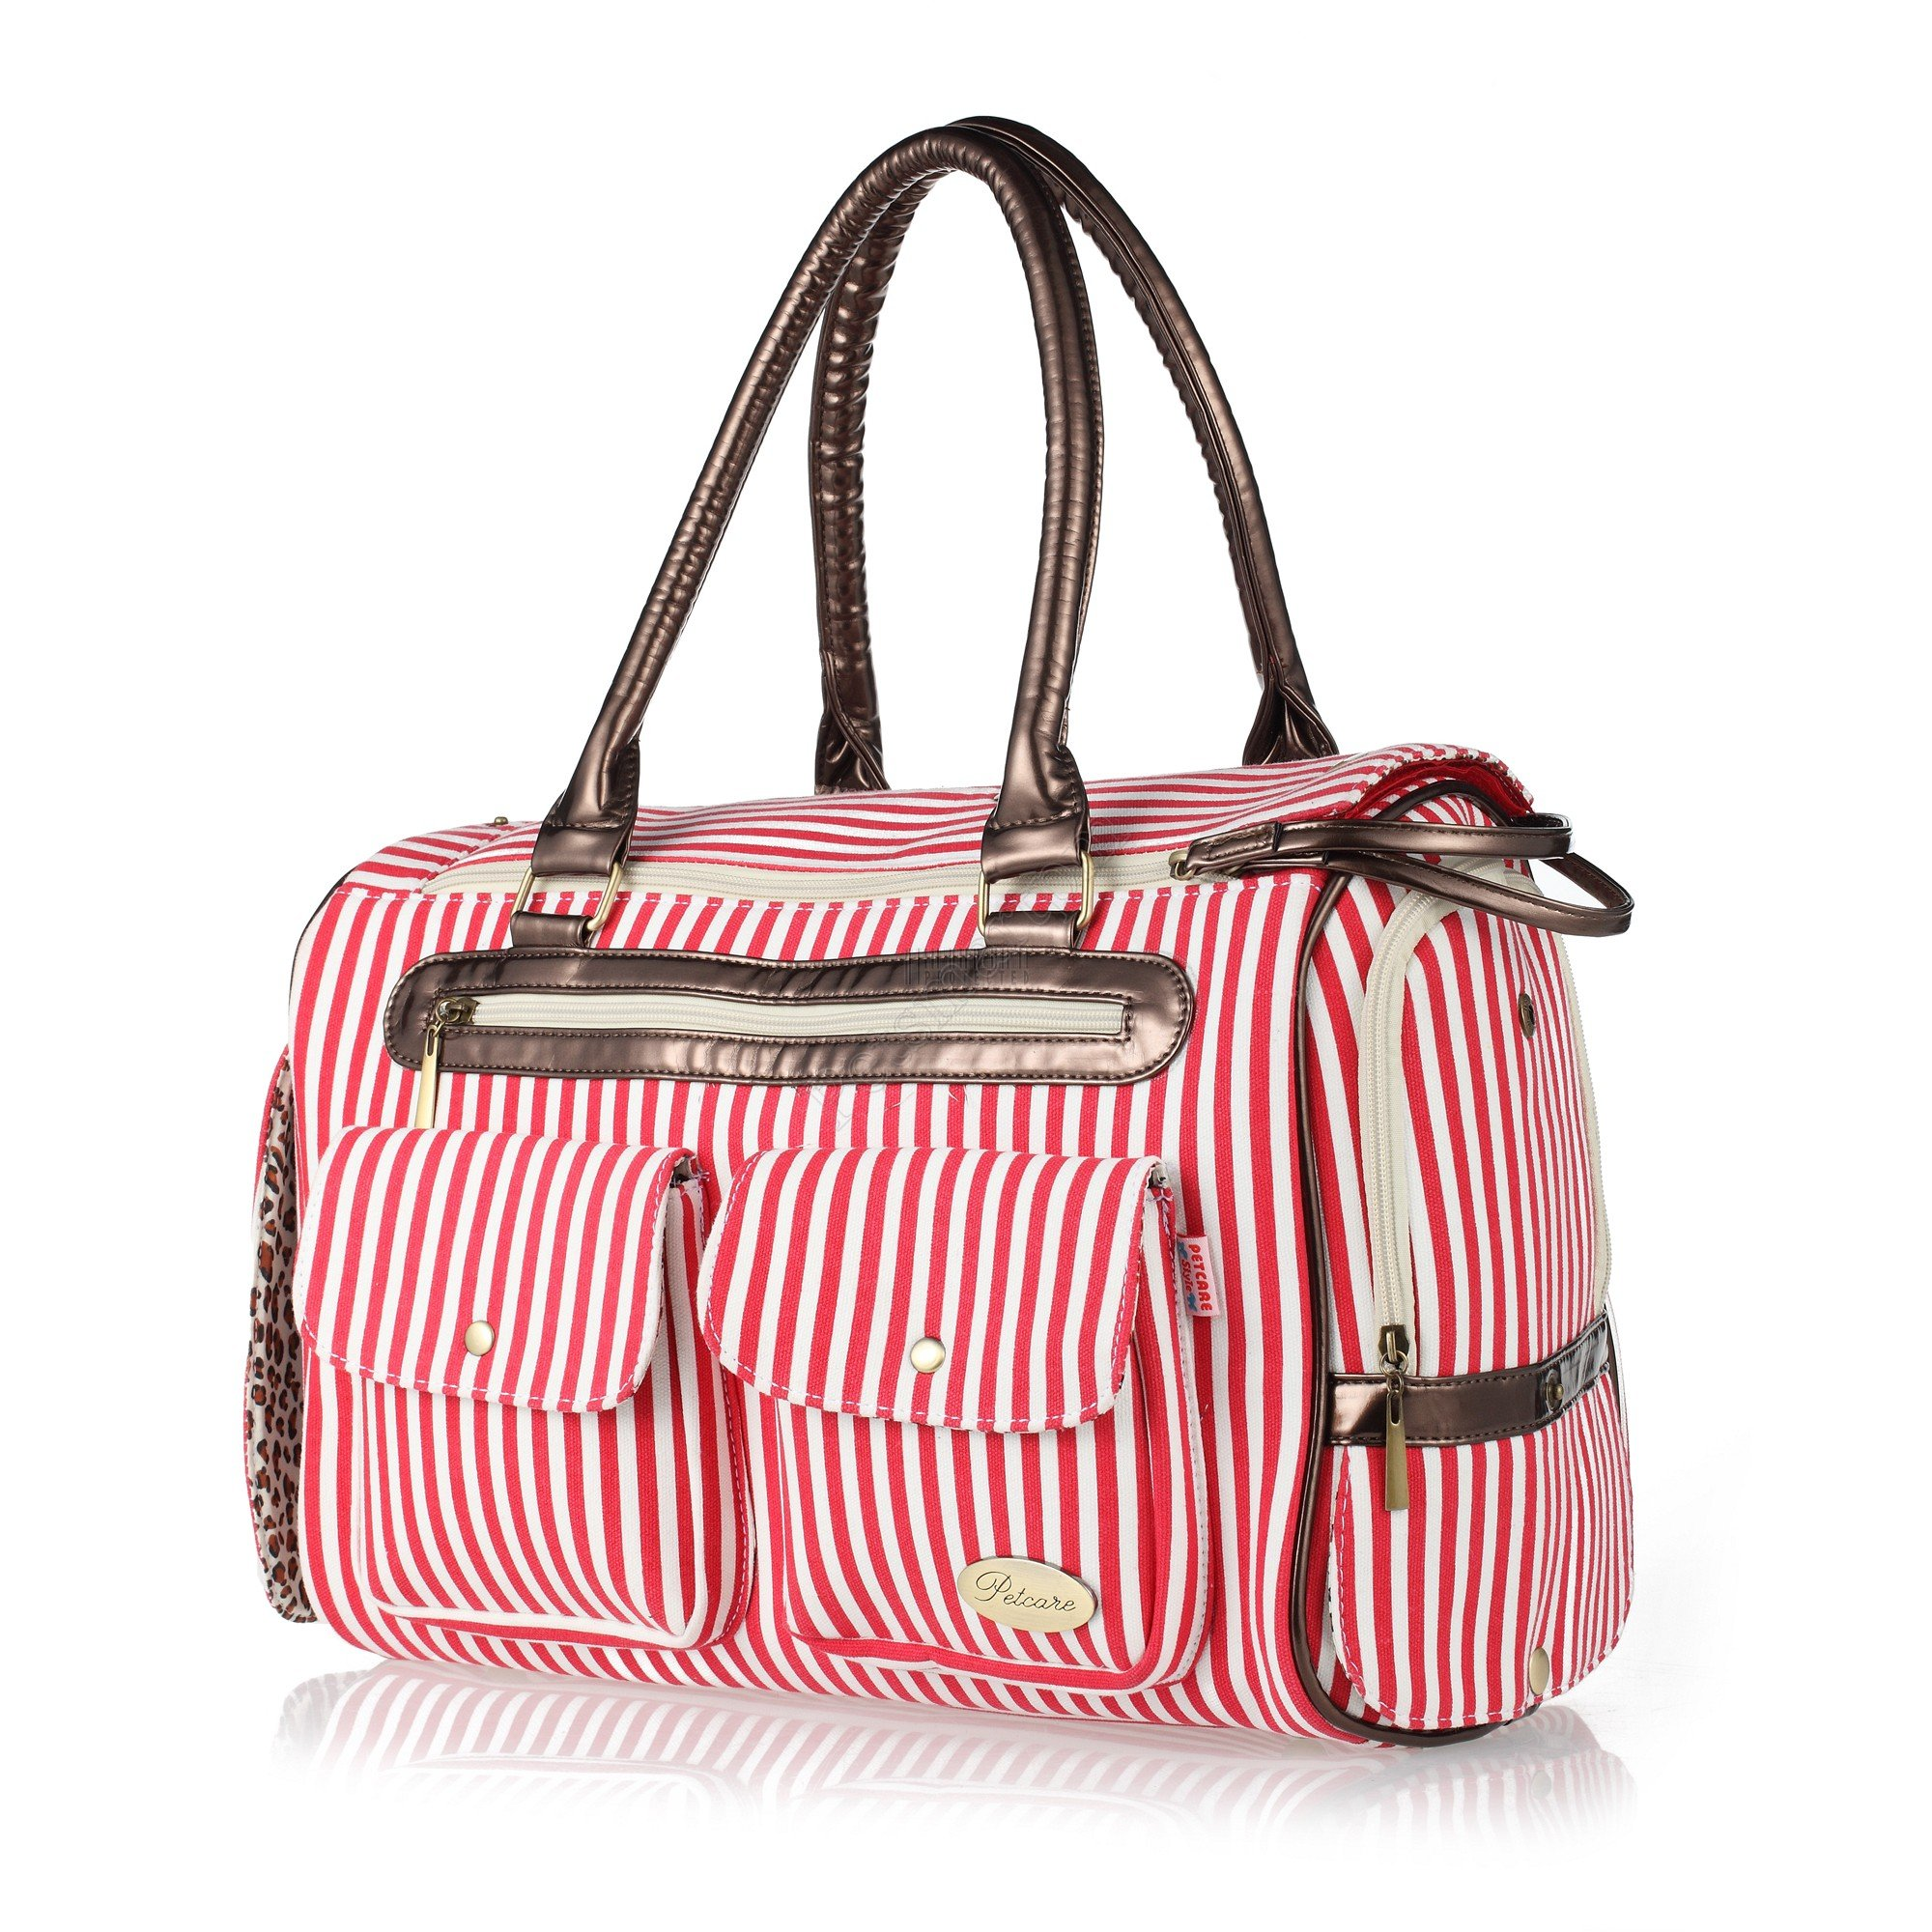 Petsmartpm 223RDT Red & White Stripe Dog Carriers Bag Pet Totes Purse Puppy Handbag Cat Cage Doggy Pouch